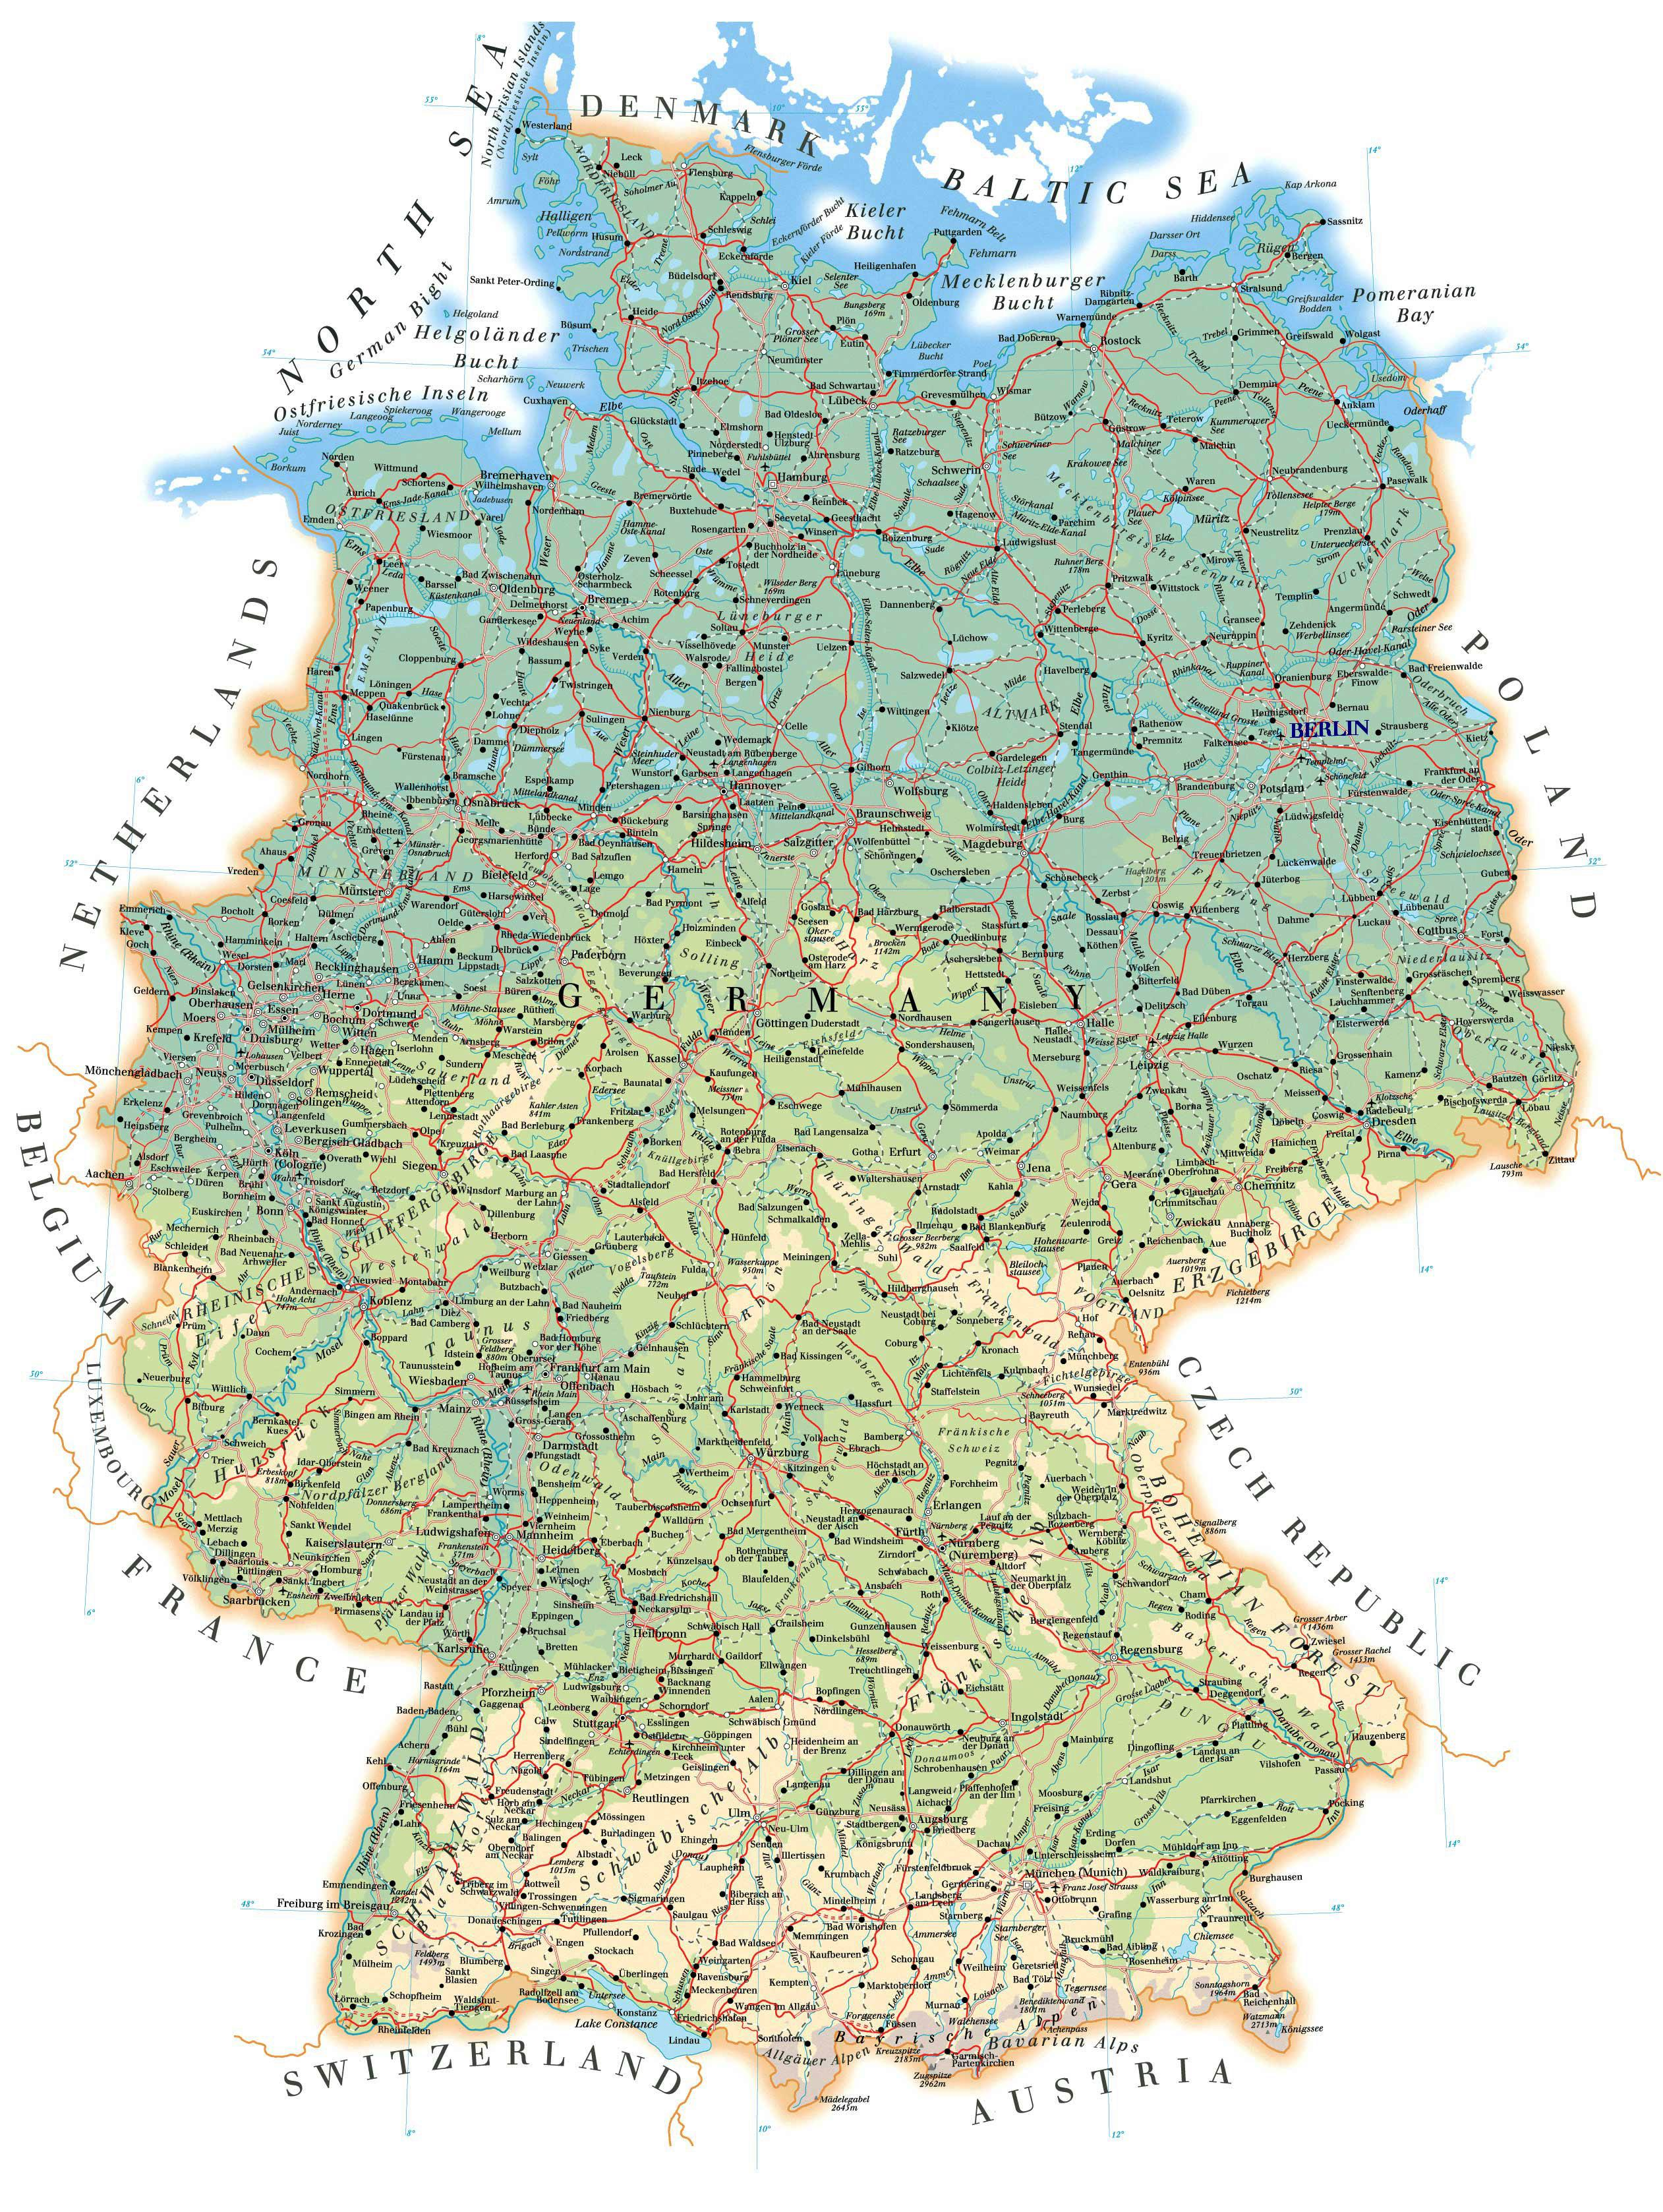 Picture of: Detailed Map Of Germany Labeled Map Of Germany Western Europe Europe